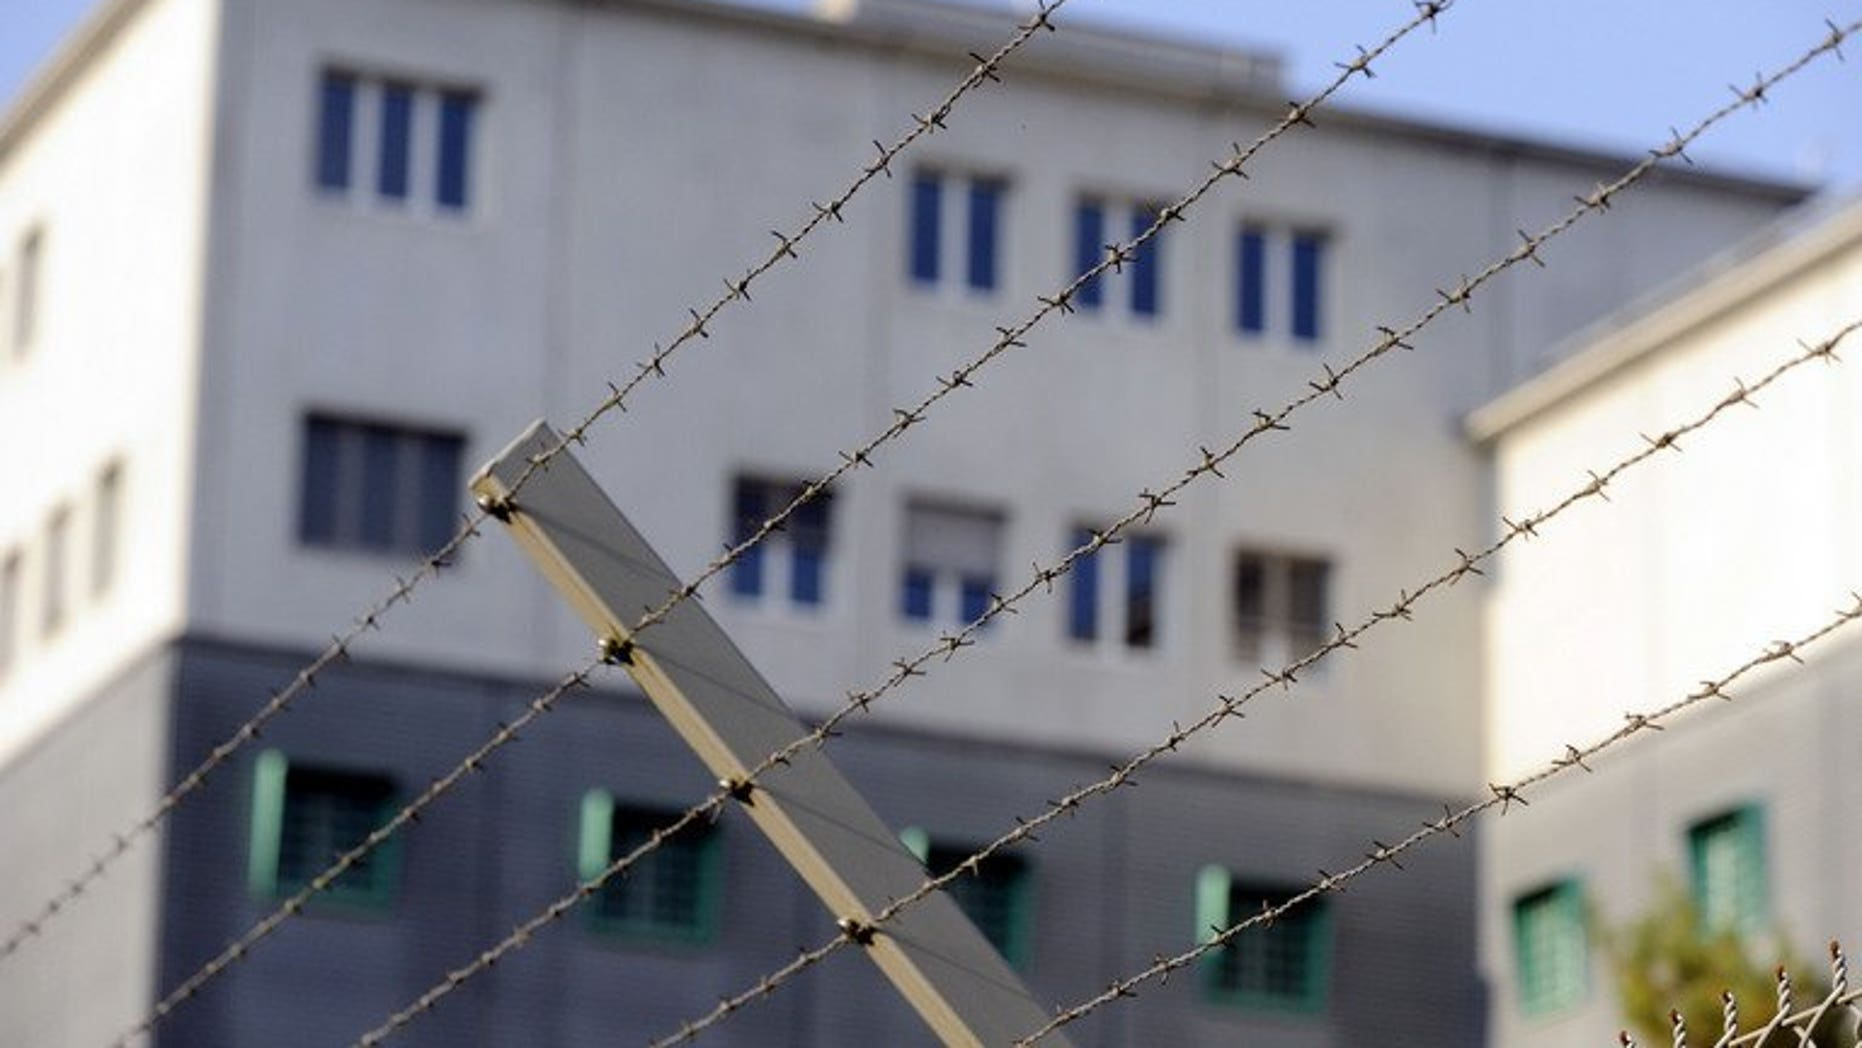 """File picture shows a prison in Kloten, Switzerland on September 27, 2009. A Bosnian from the """"Pink Panther"""" gang of international jewel thieves escaped from a Swiss prison in a dramatic break-out involving a fellow inmate and two armed accomplices, police said Friday."""